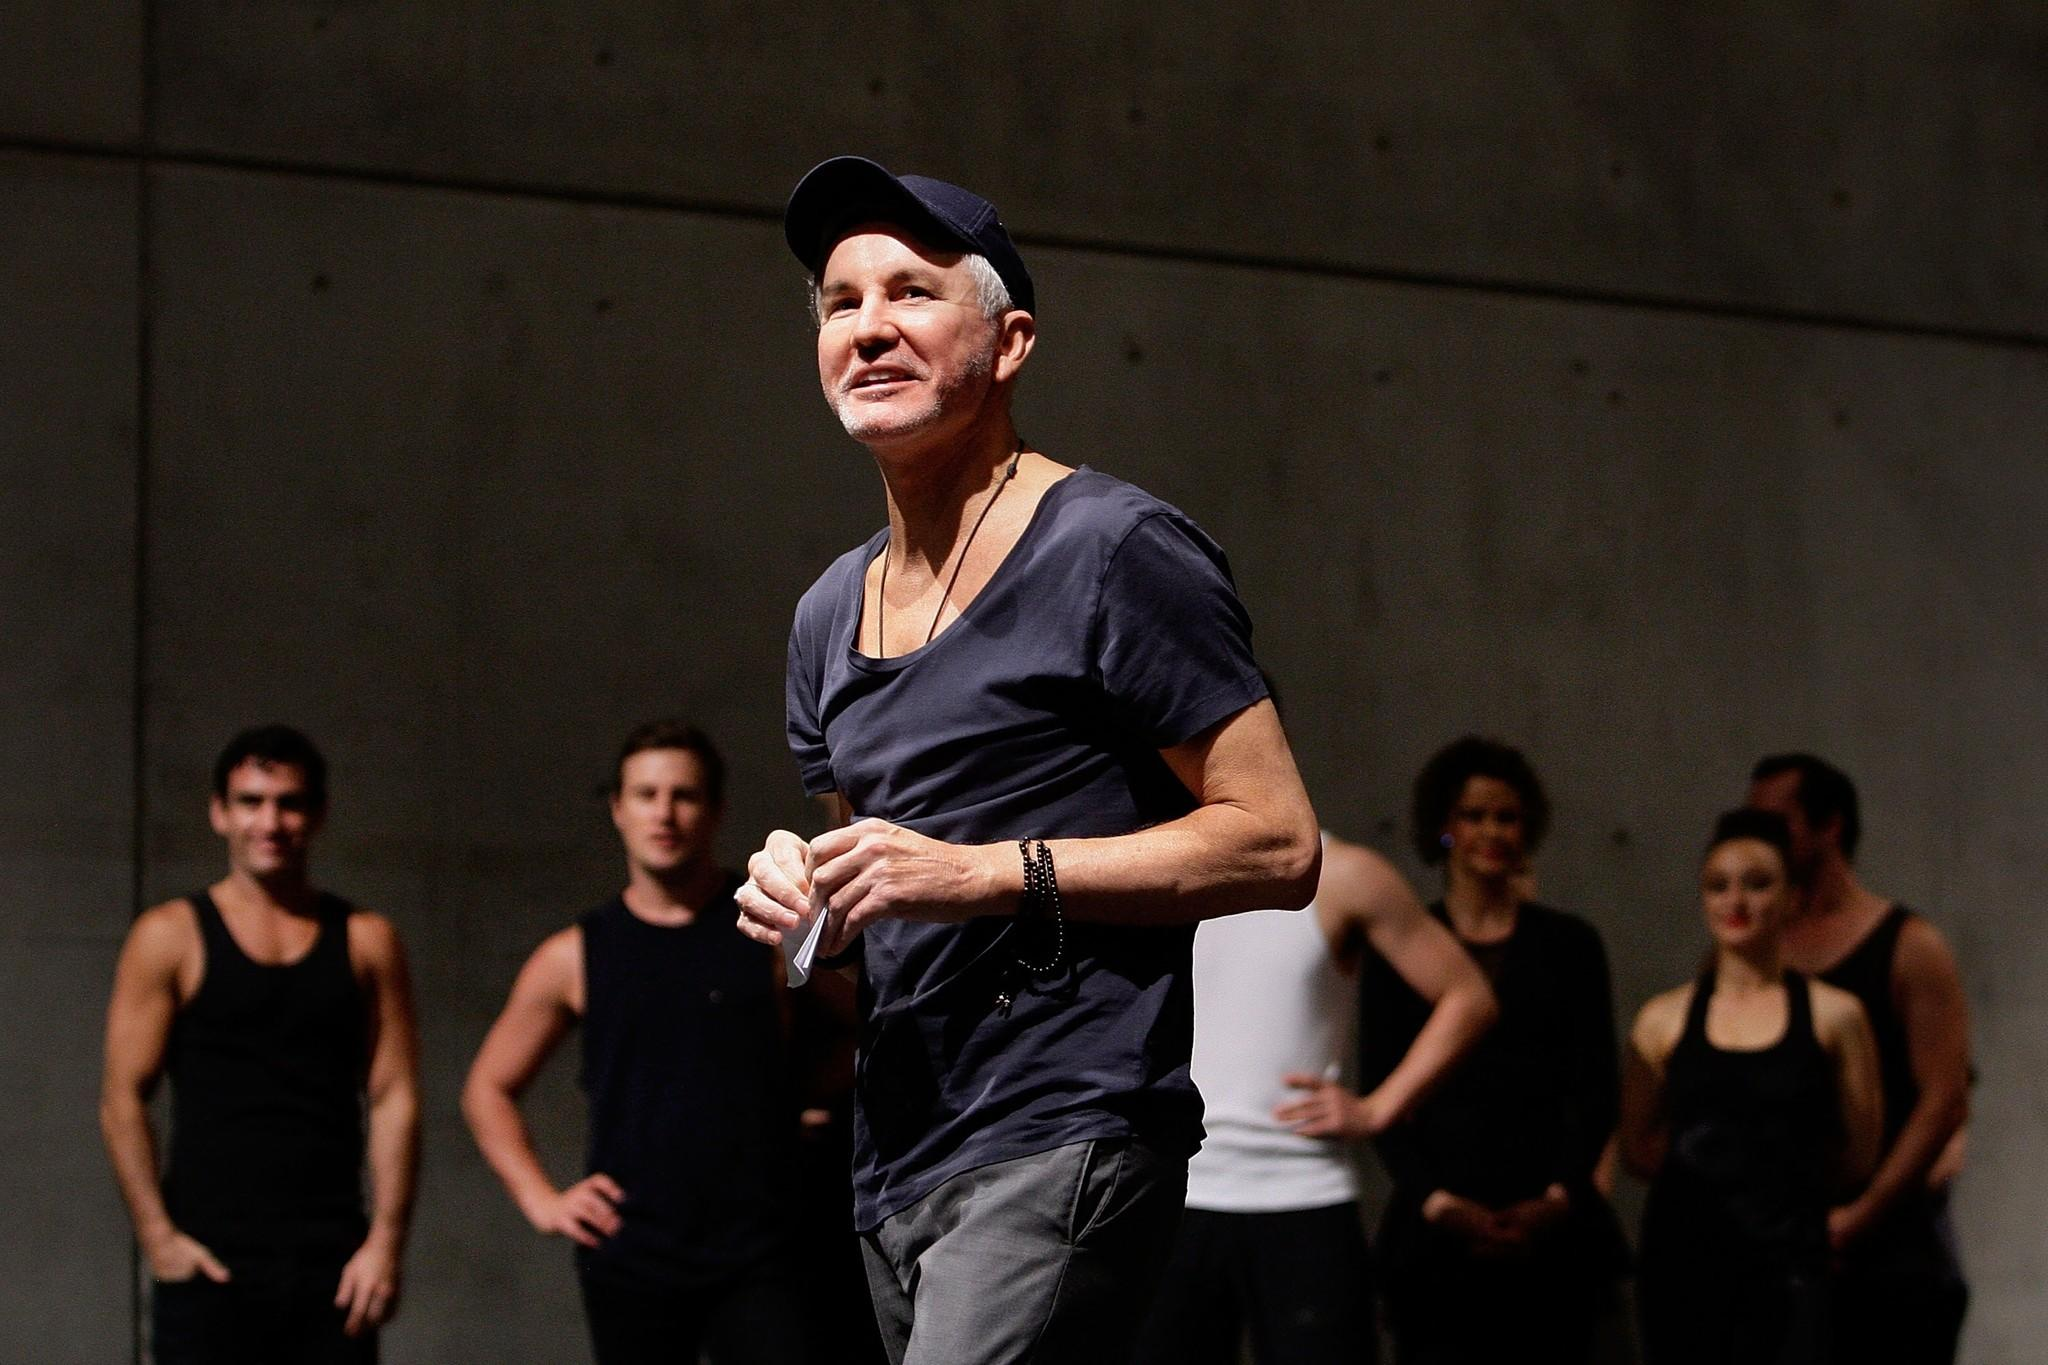 """Baz Luhrmann with cast members of the Australian musical """"Strictly Ballroom: The Musical"""" at Carriageworks in Sydney, Australia."""